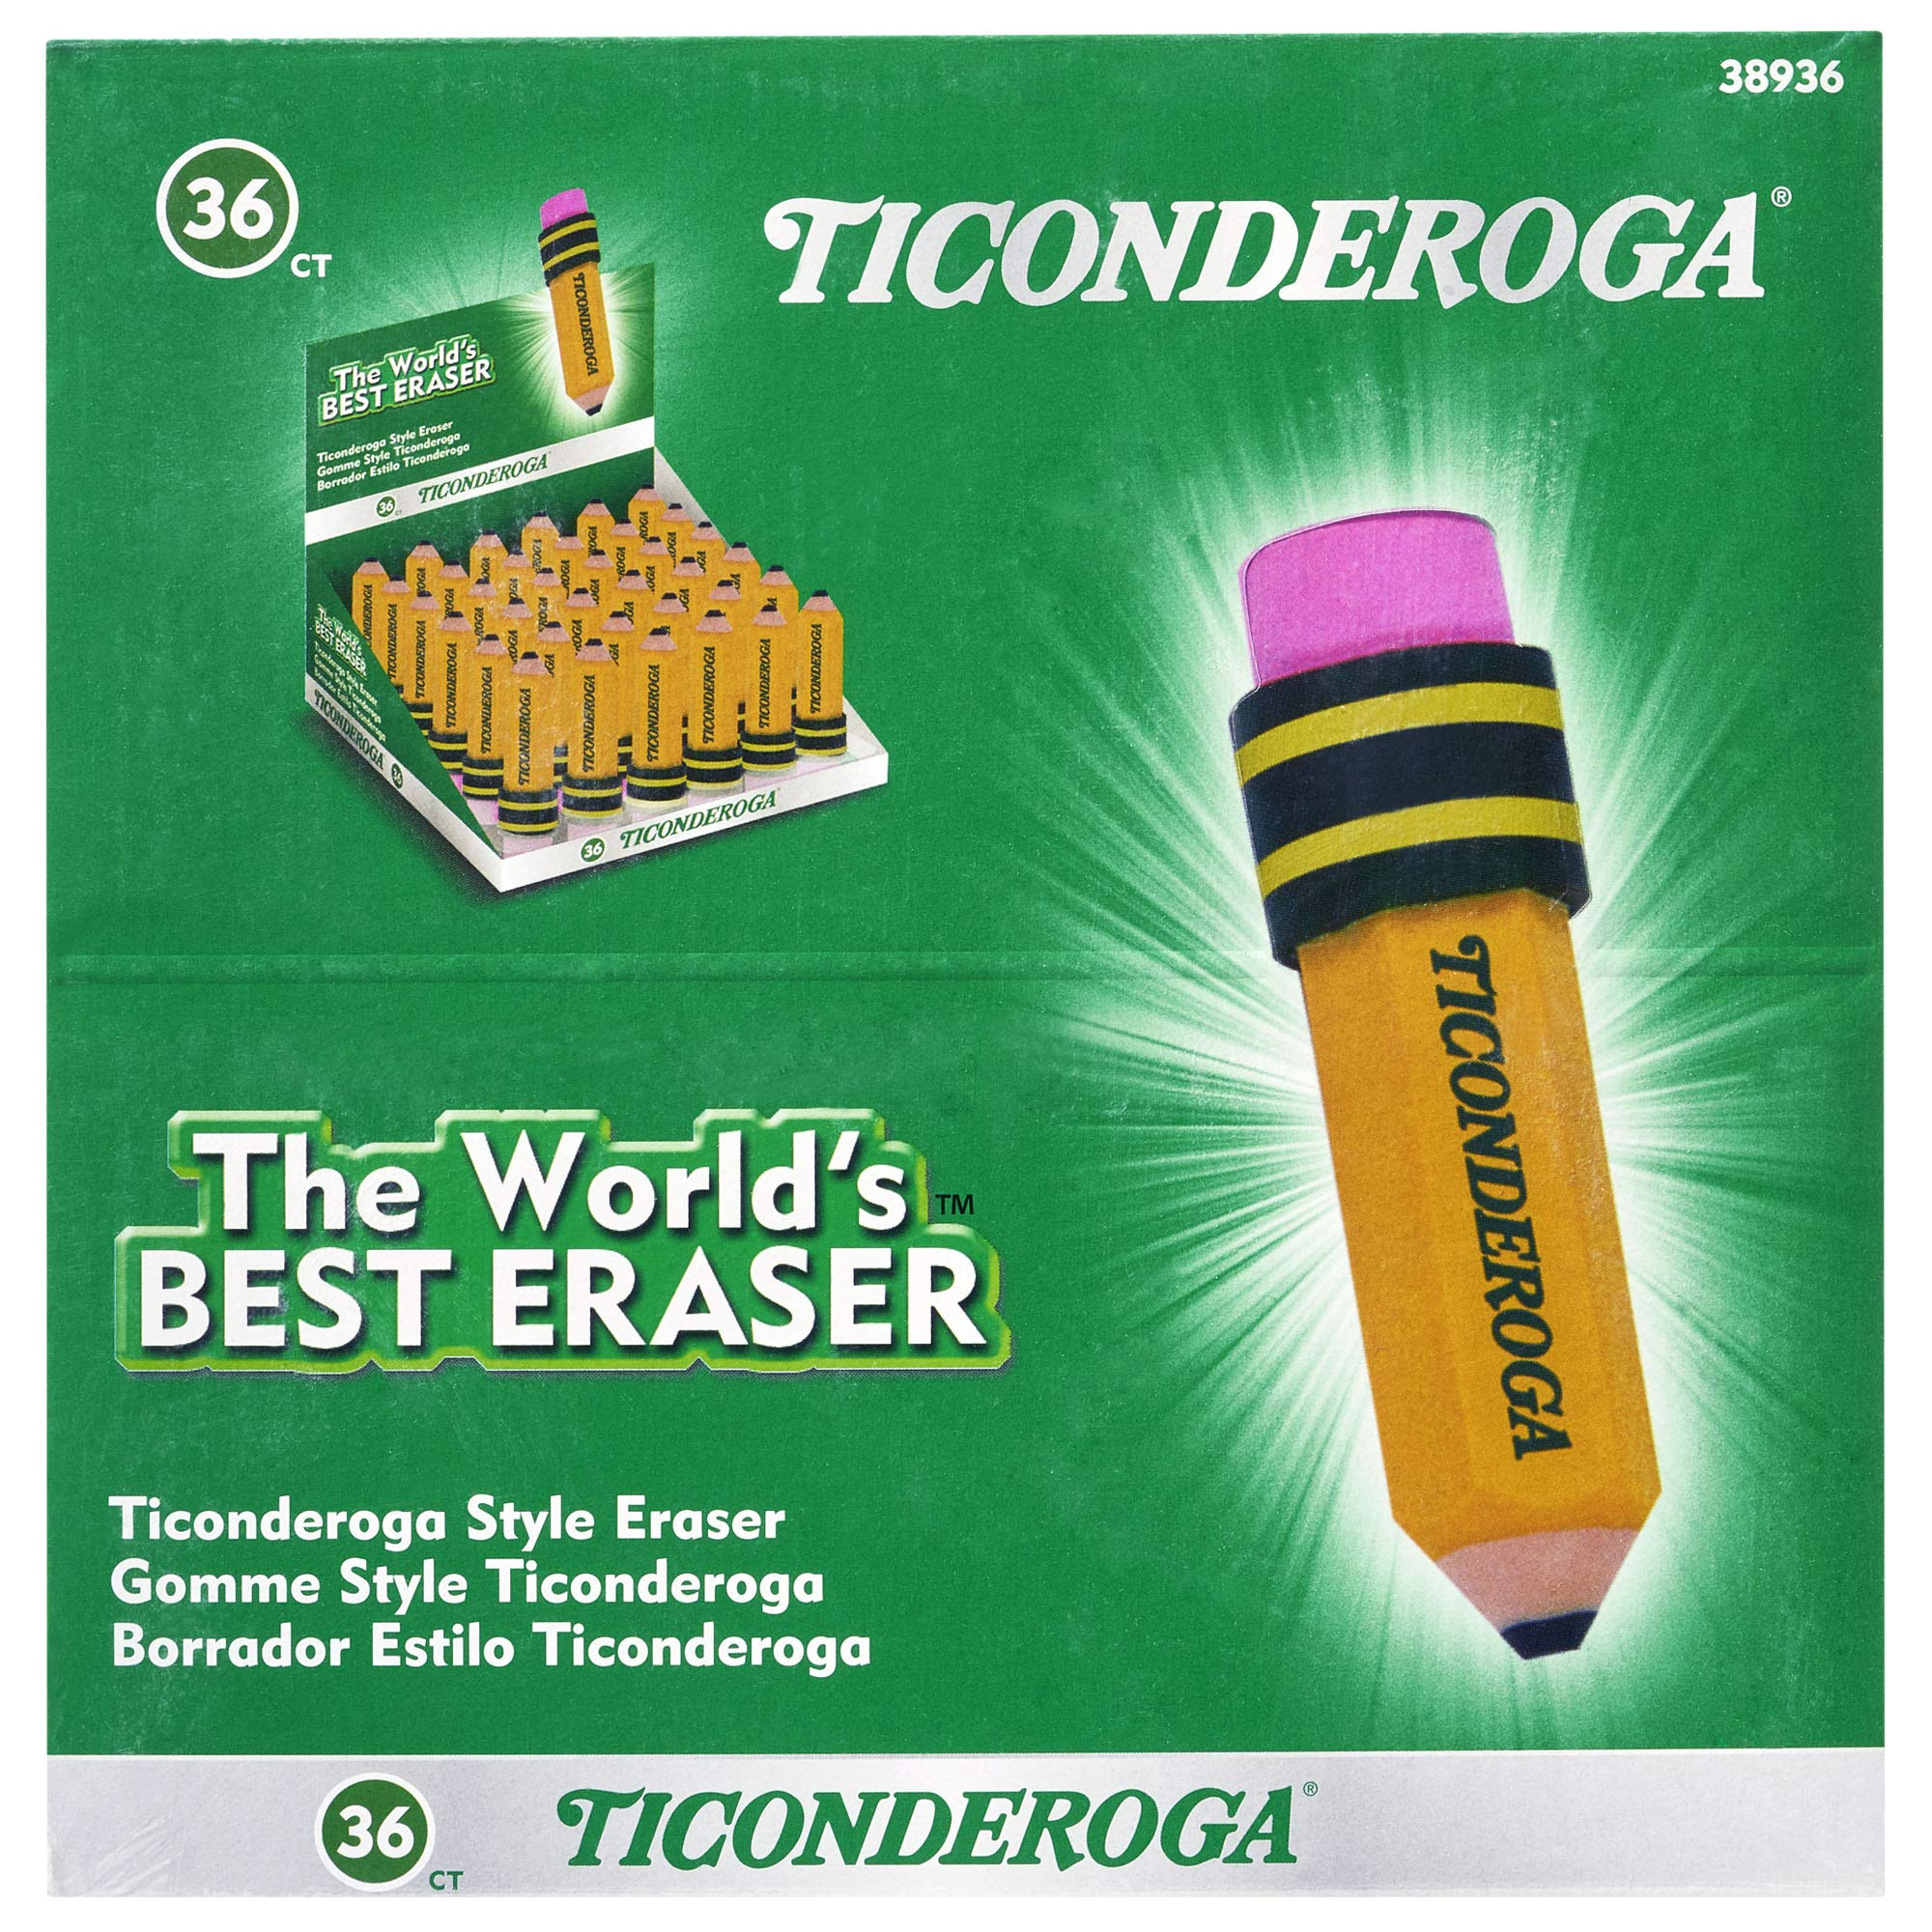 TICONDEROGA Erasers, Pencil Shaped, Yellow, 36-Pack (38936) by Ticonderoga (Image #3)